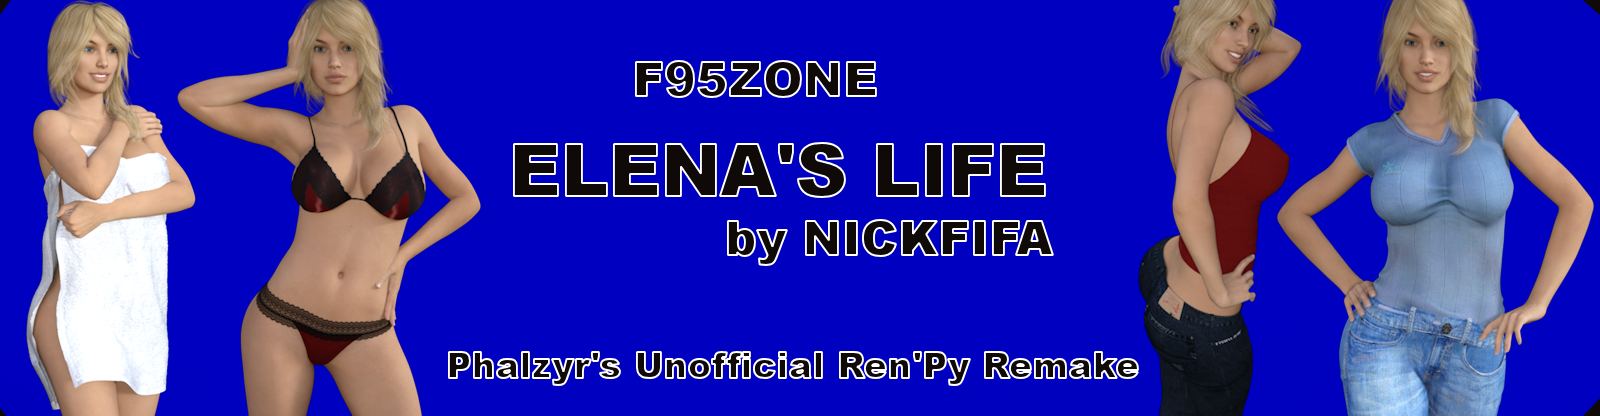 Elena's Life RenPY Unofficial Remake poster